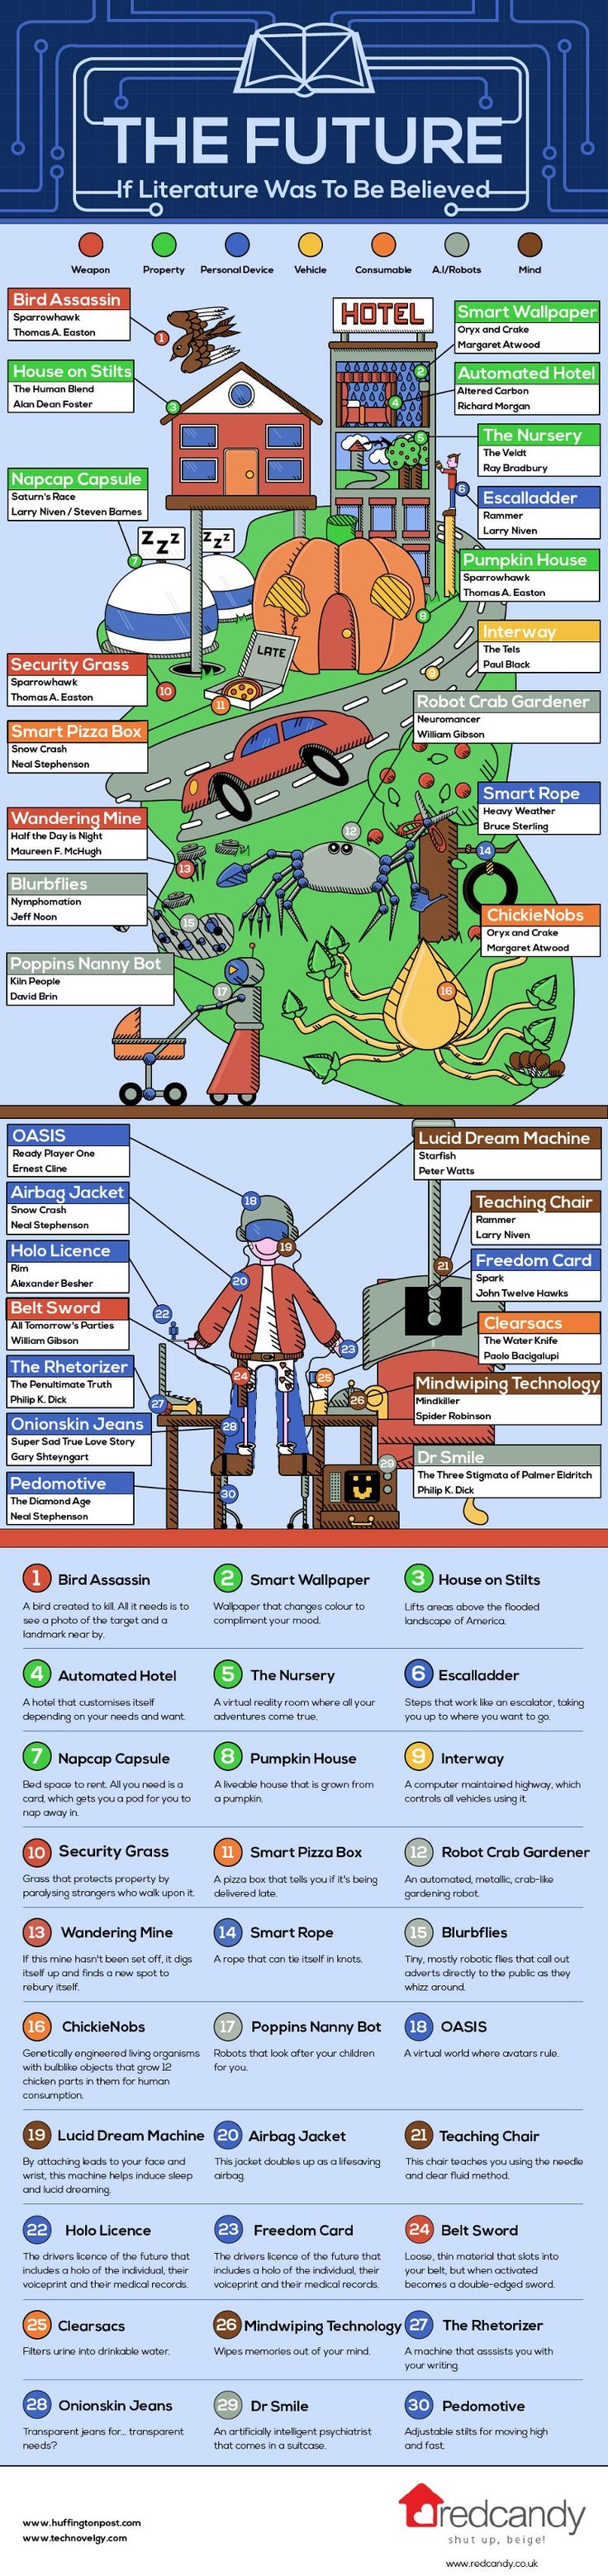 We love #infographic like this: The Future According to Science Fiction